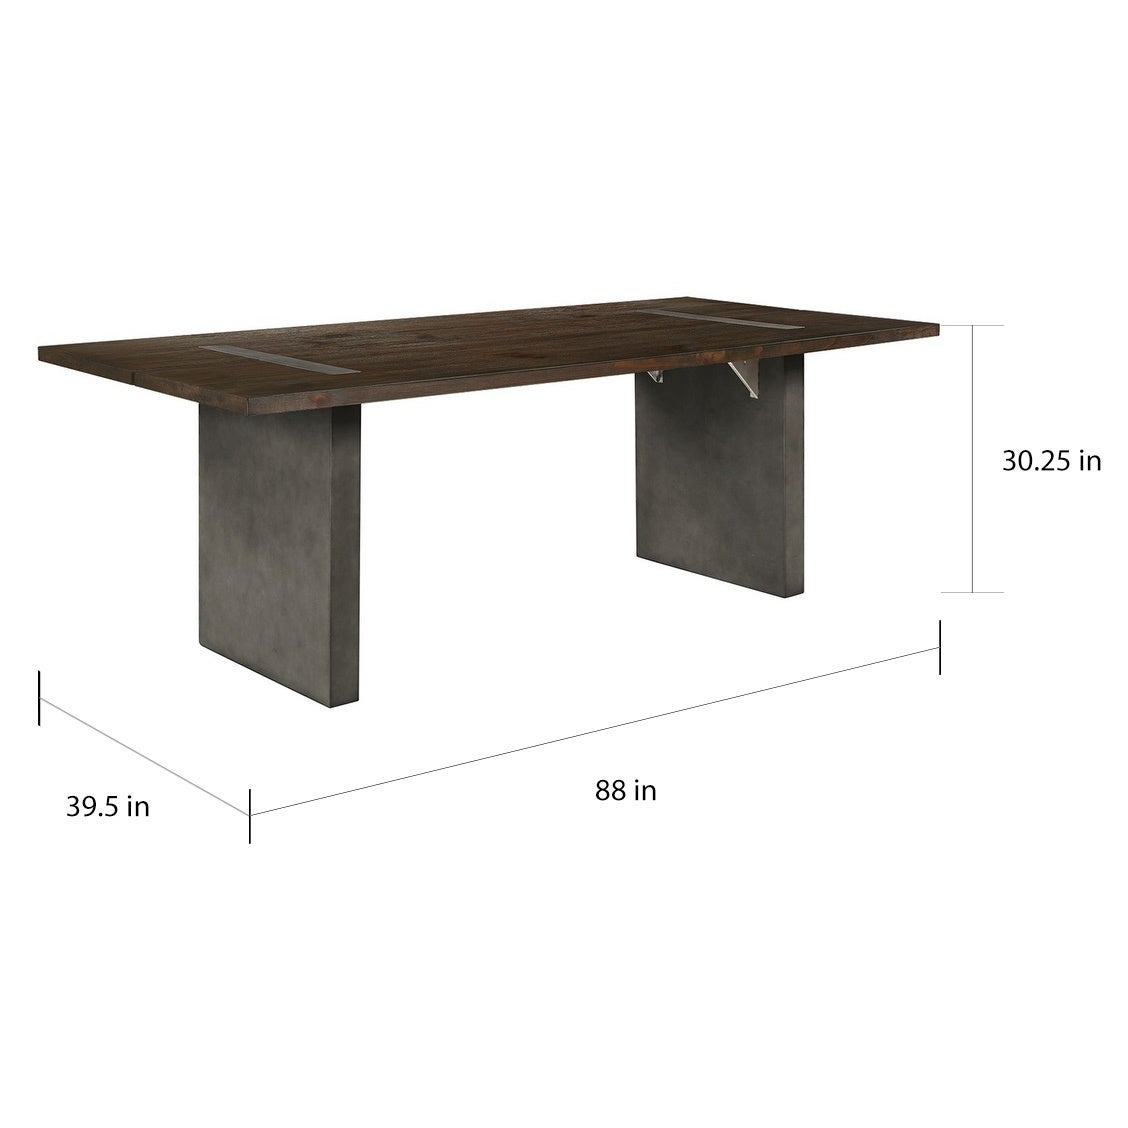 Carbon Loft Rideous Grey Wood and Concrete Dining Table